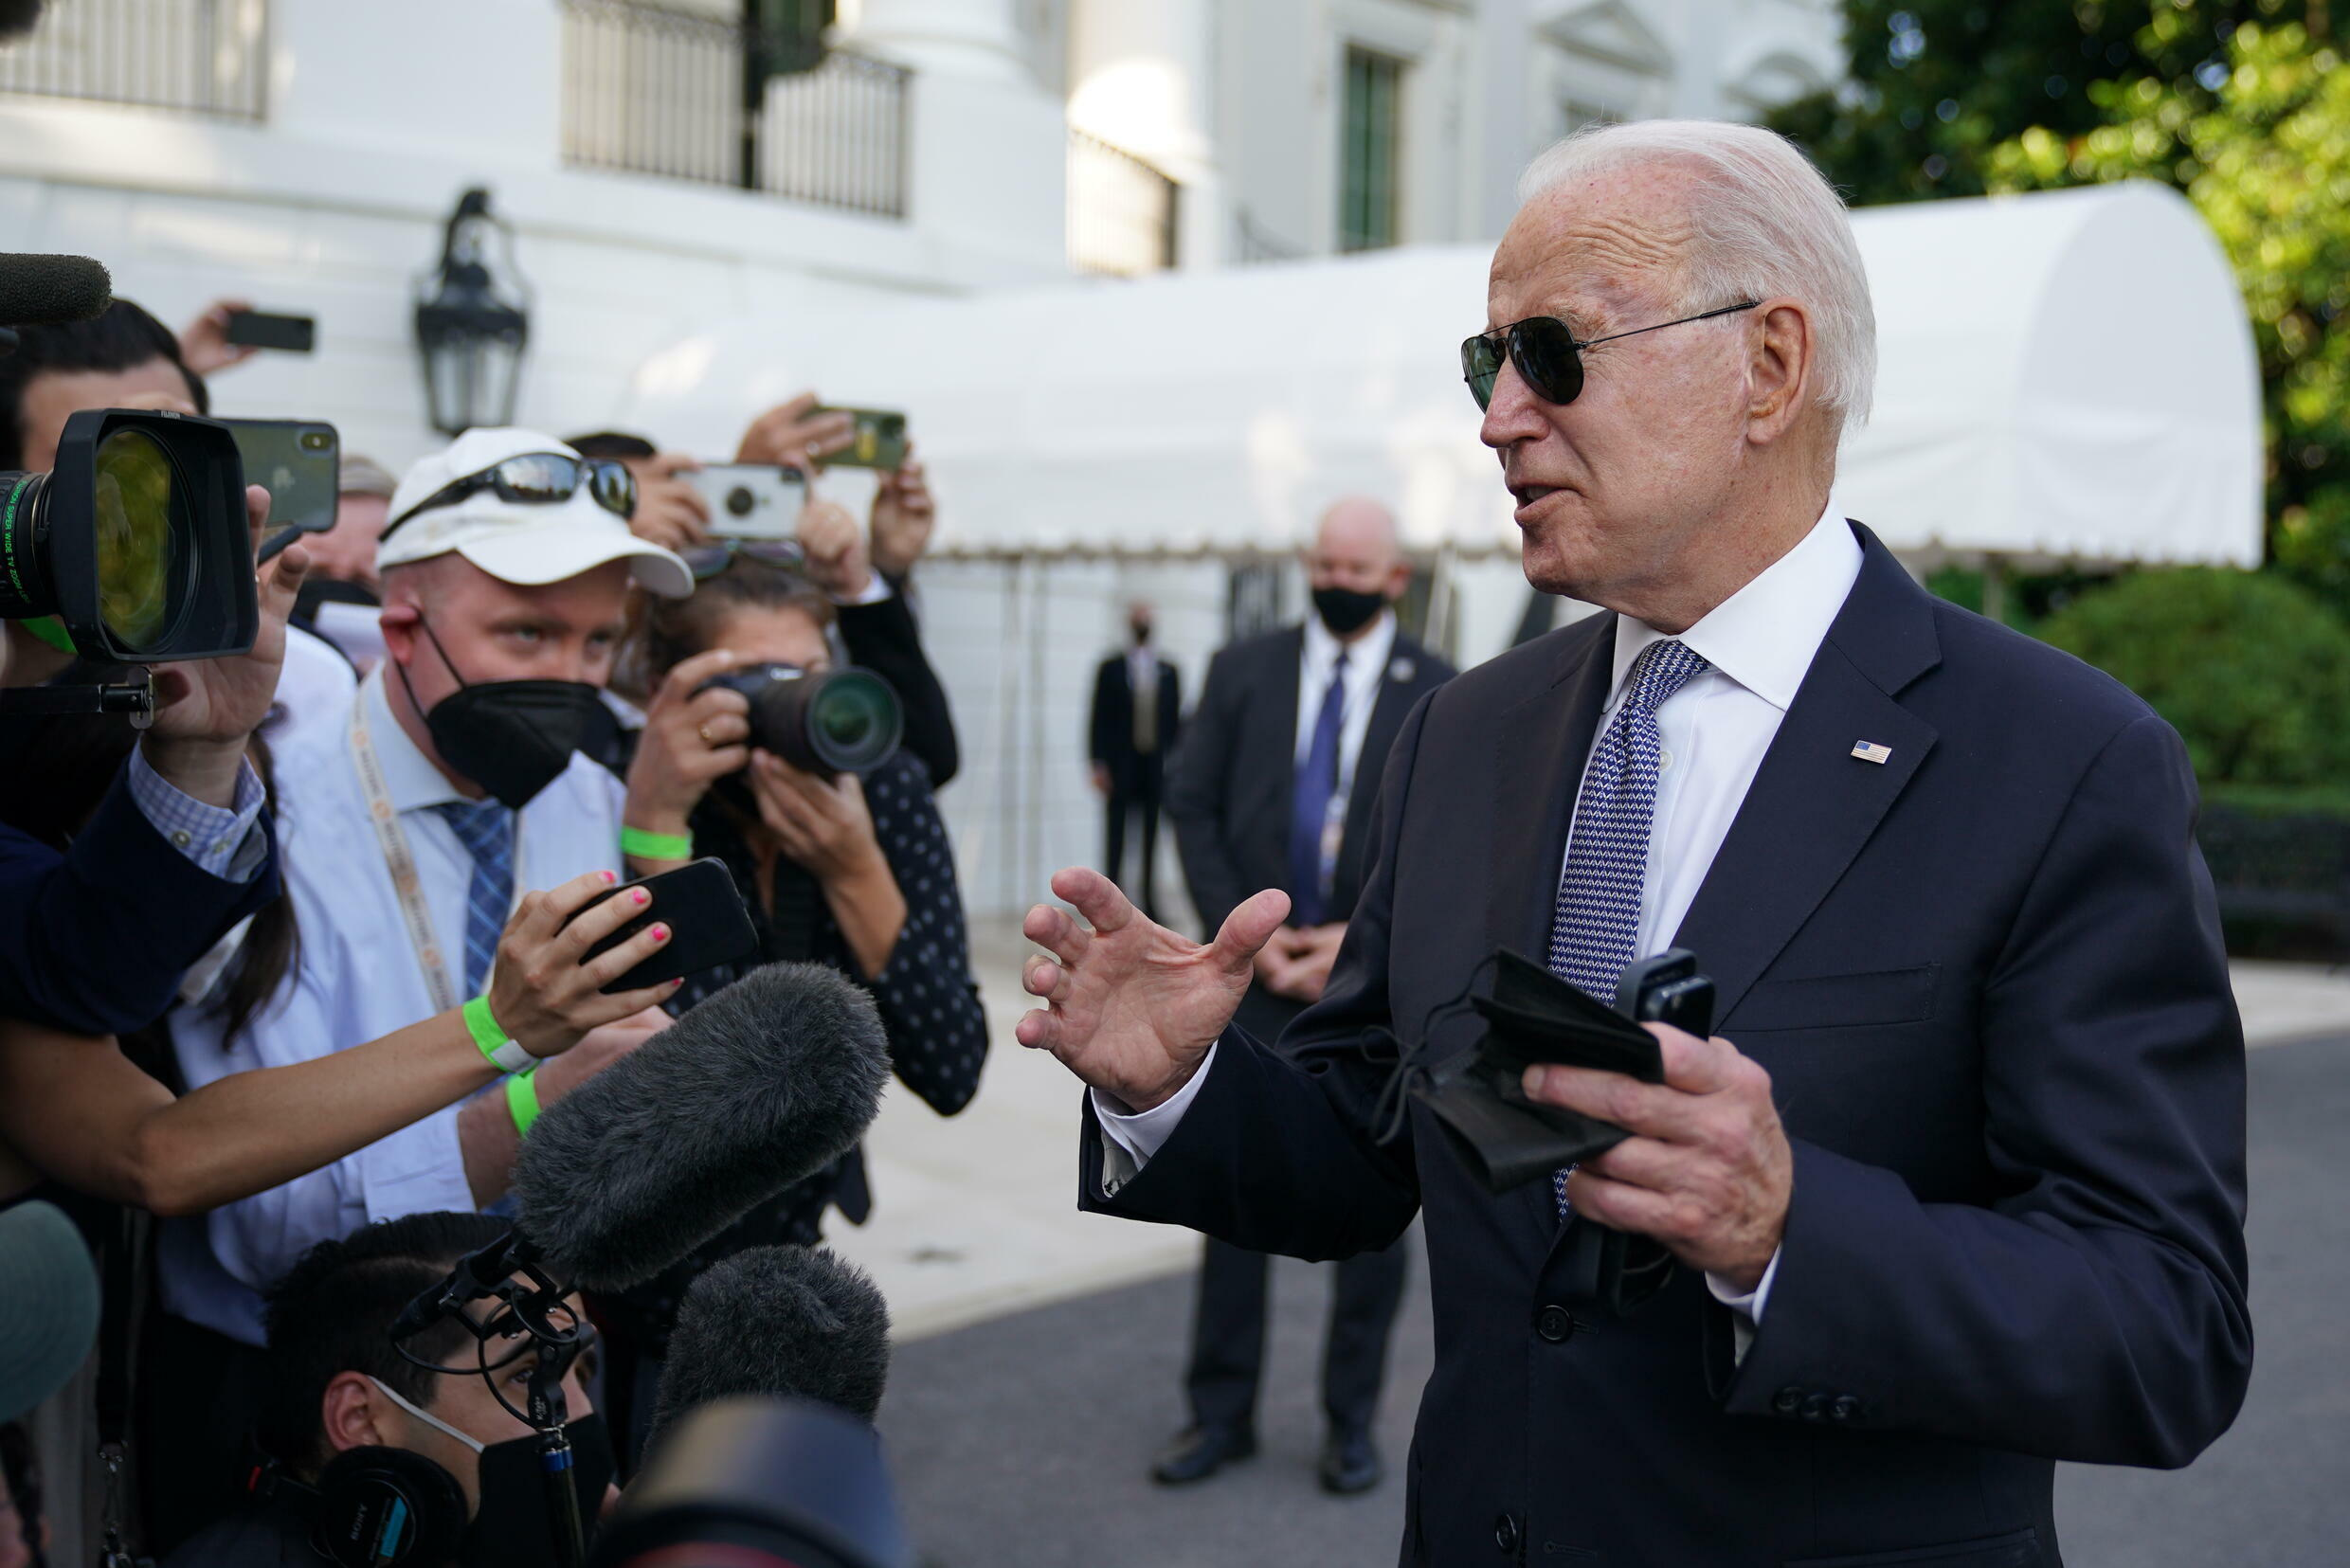 US President Joe Biden argued his massive spending proposals would make the economy more inclusive